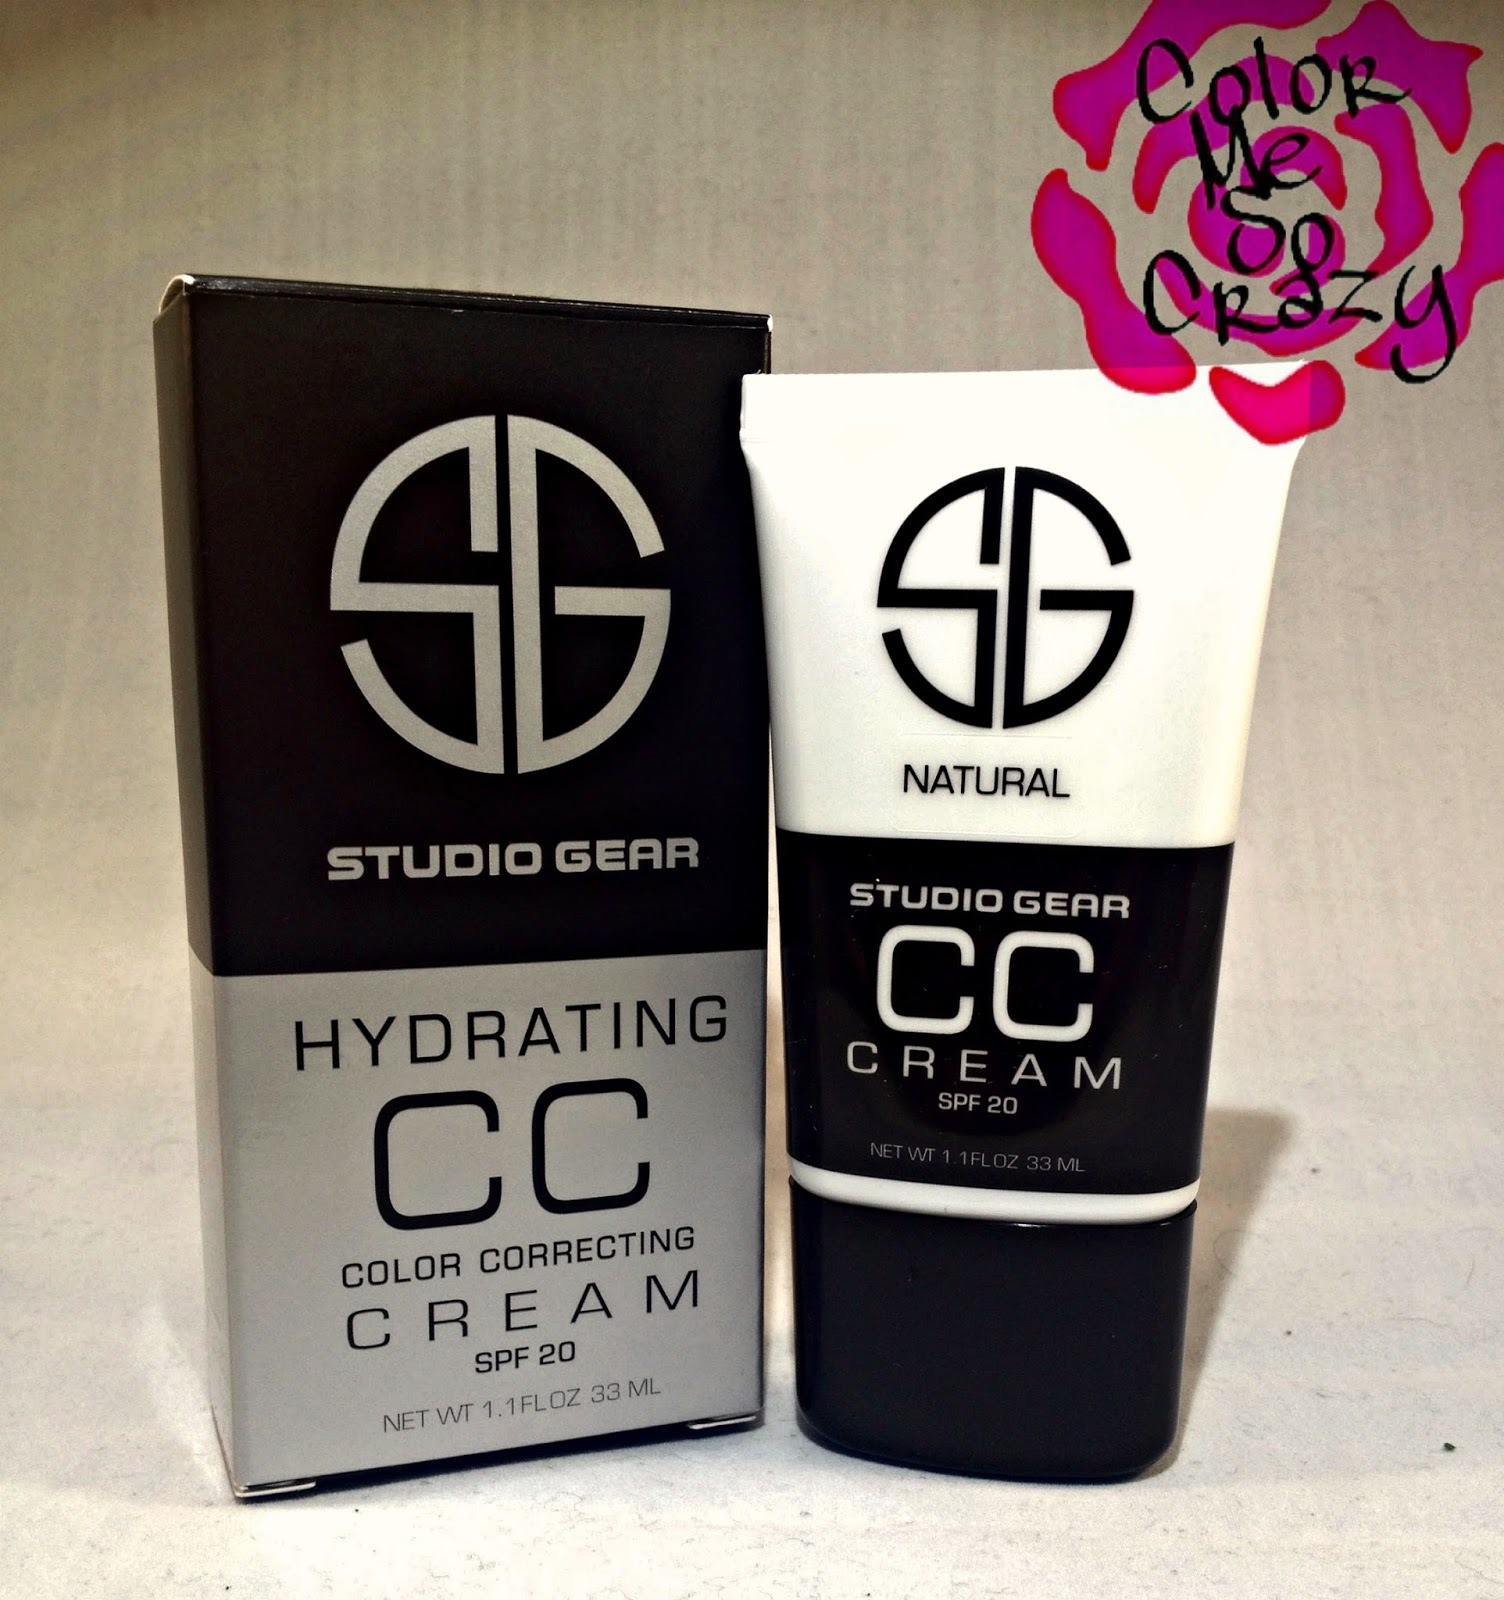 Introducing Studio Gear's Hydrating CC Cream AND A TREAT FOR YOU!!